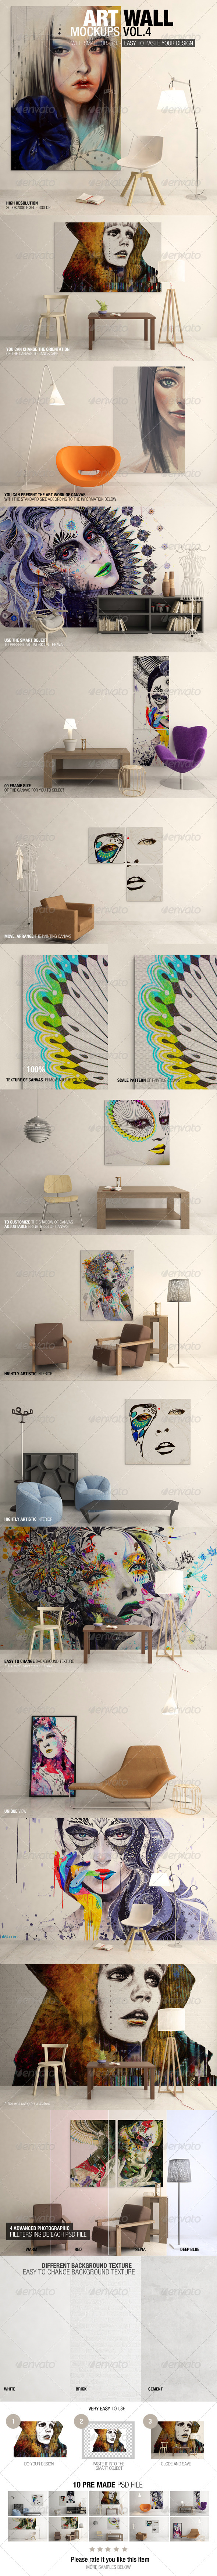 Art Wall Mockups Vol.4 - Miscellaneous Displays